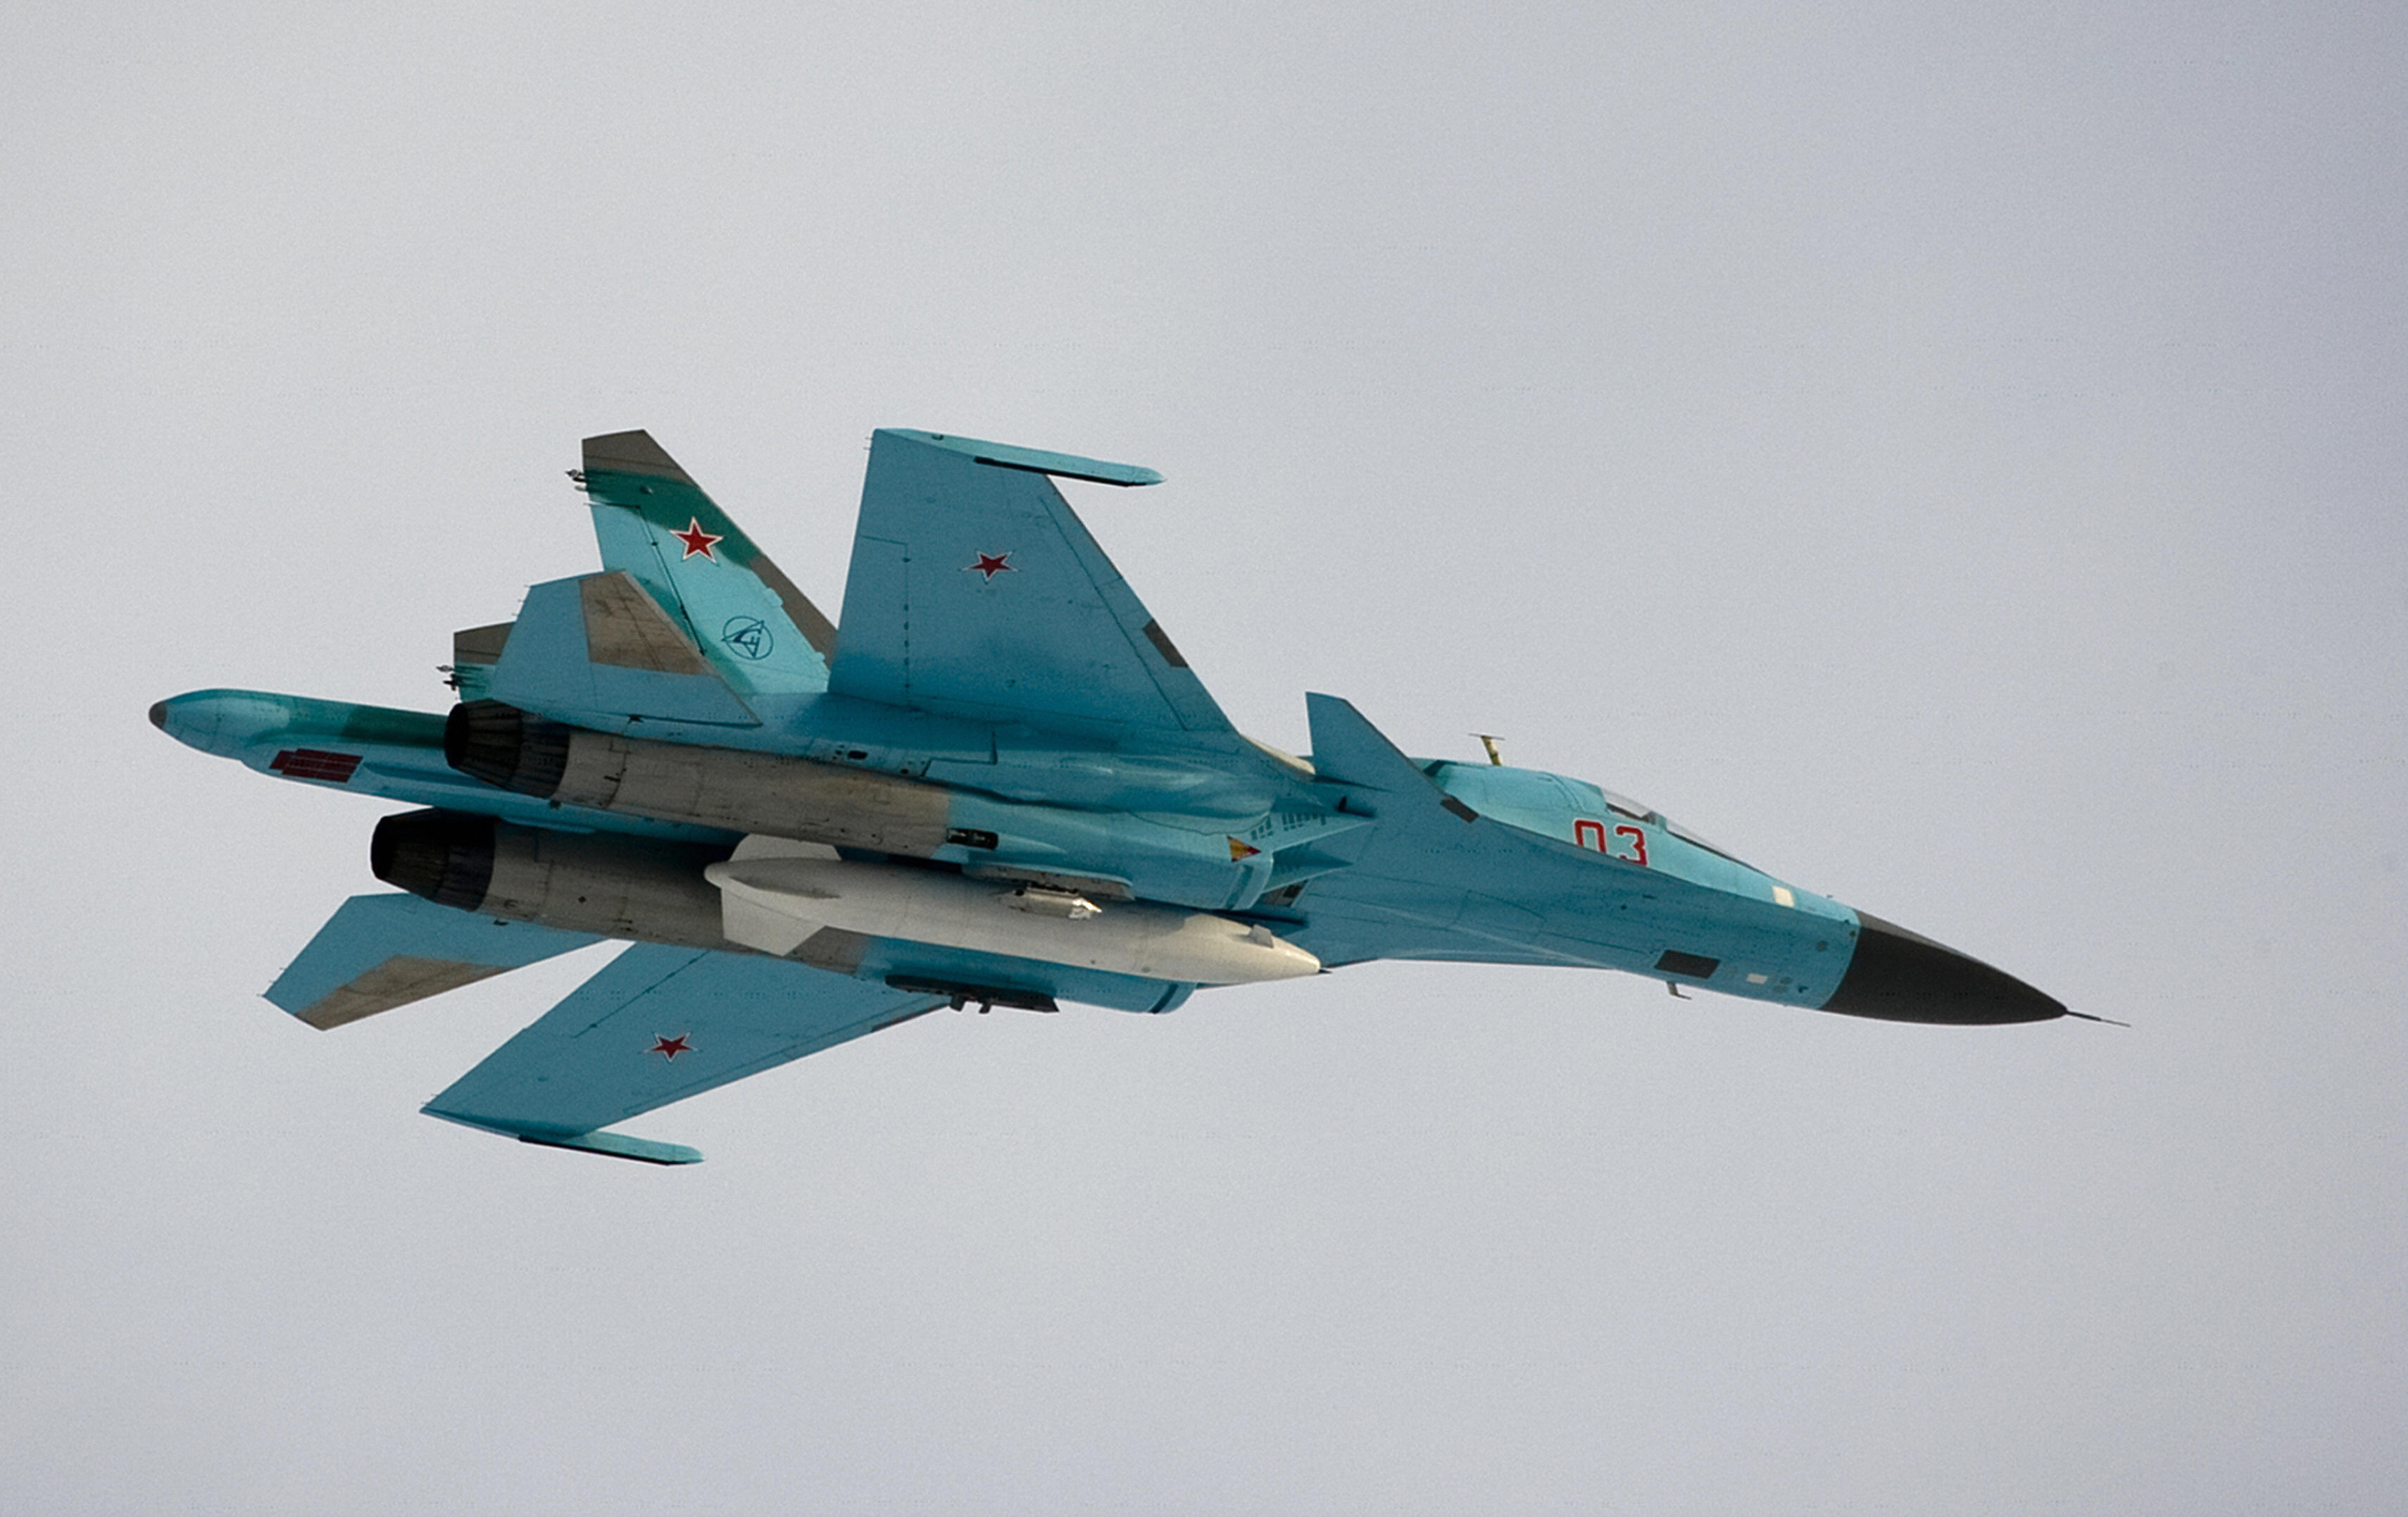 An Su-34 bomber jet flyng near Moscow in 2009. (Alexander Zemlianichenko/AFP/ Getty Images)